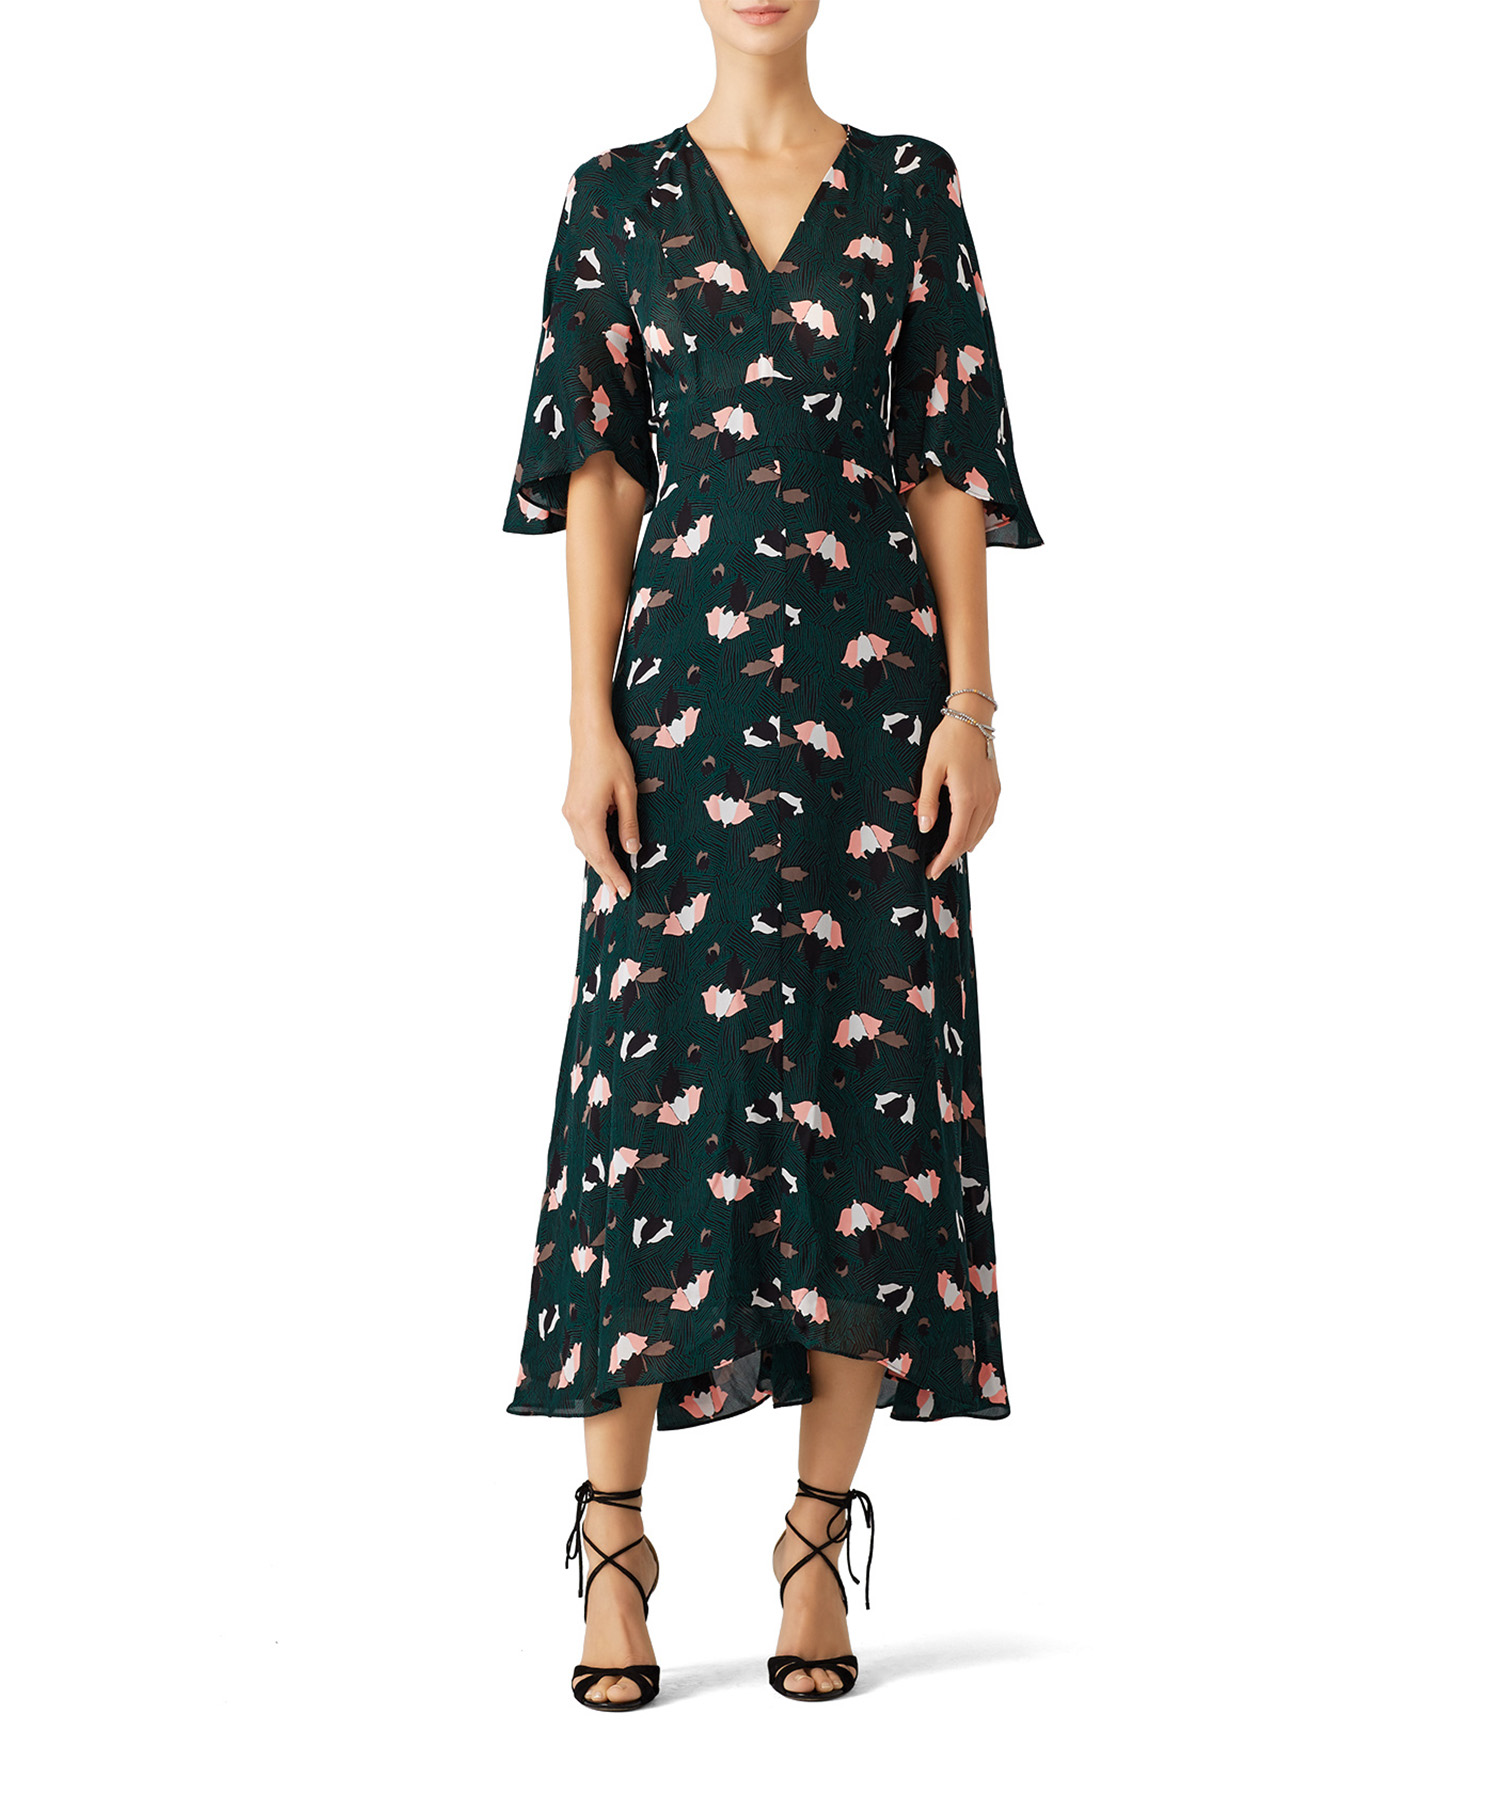 Scribble Printed Midi Dress on model